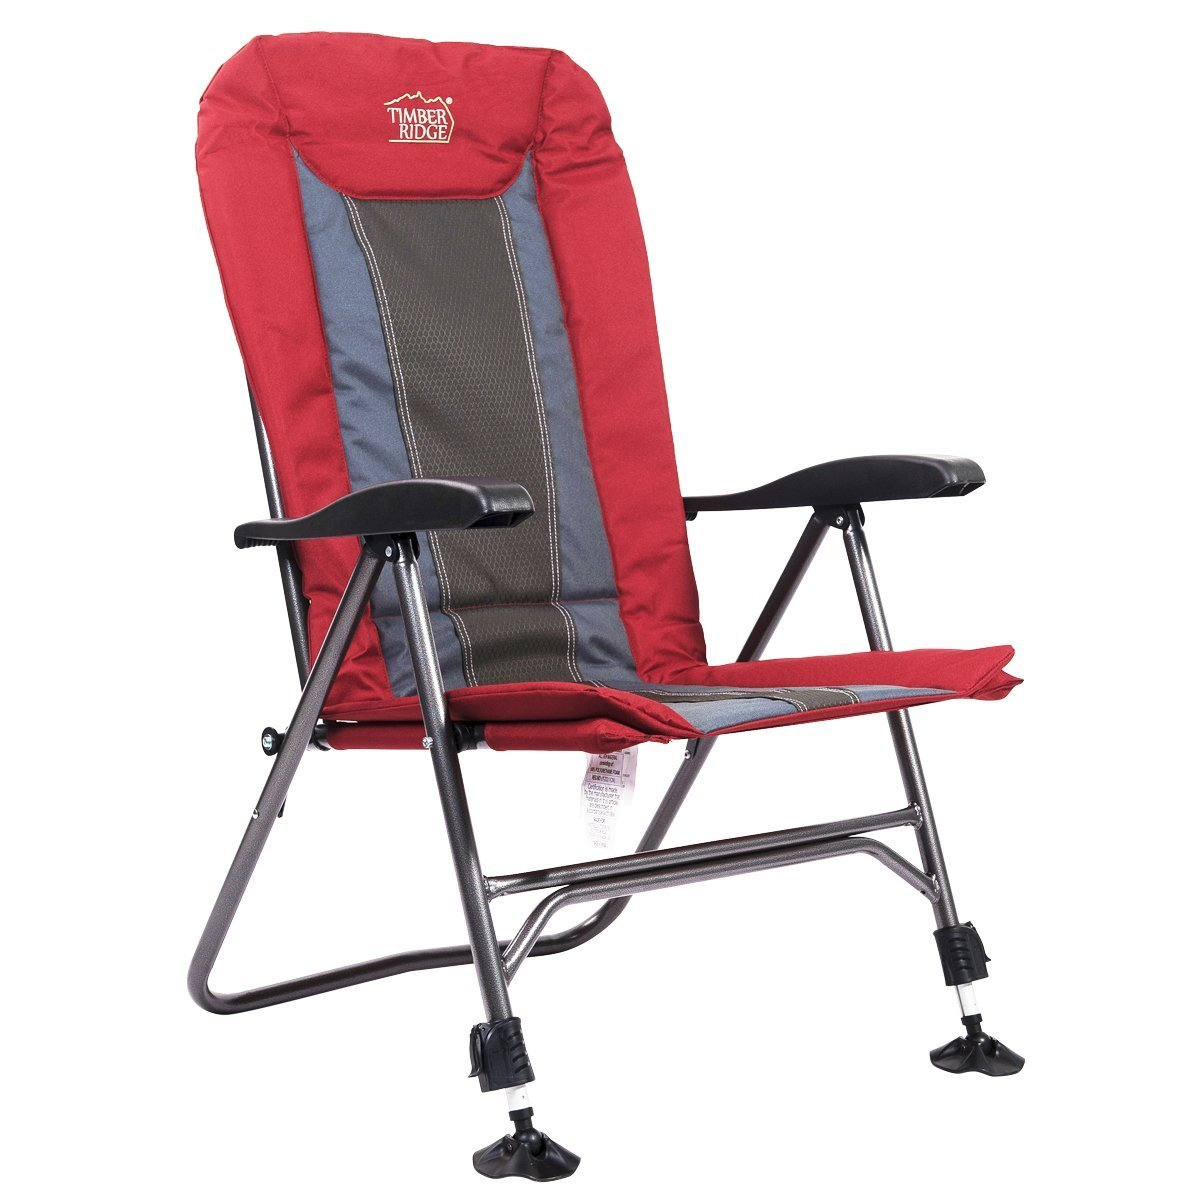 Top 10 Best Camping Chair For Bad Back 2021 Reviews 7